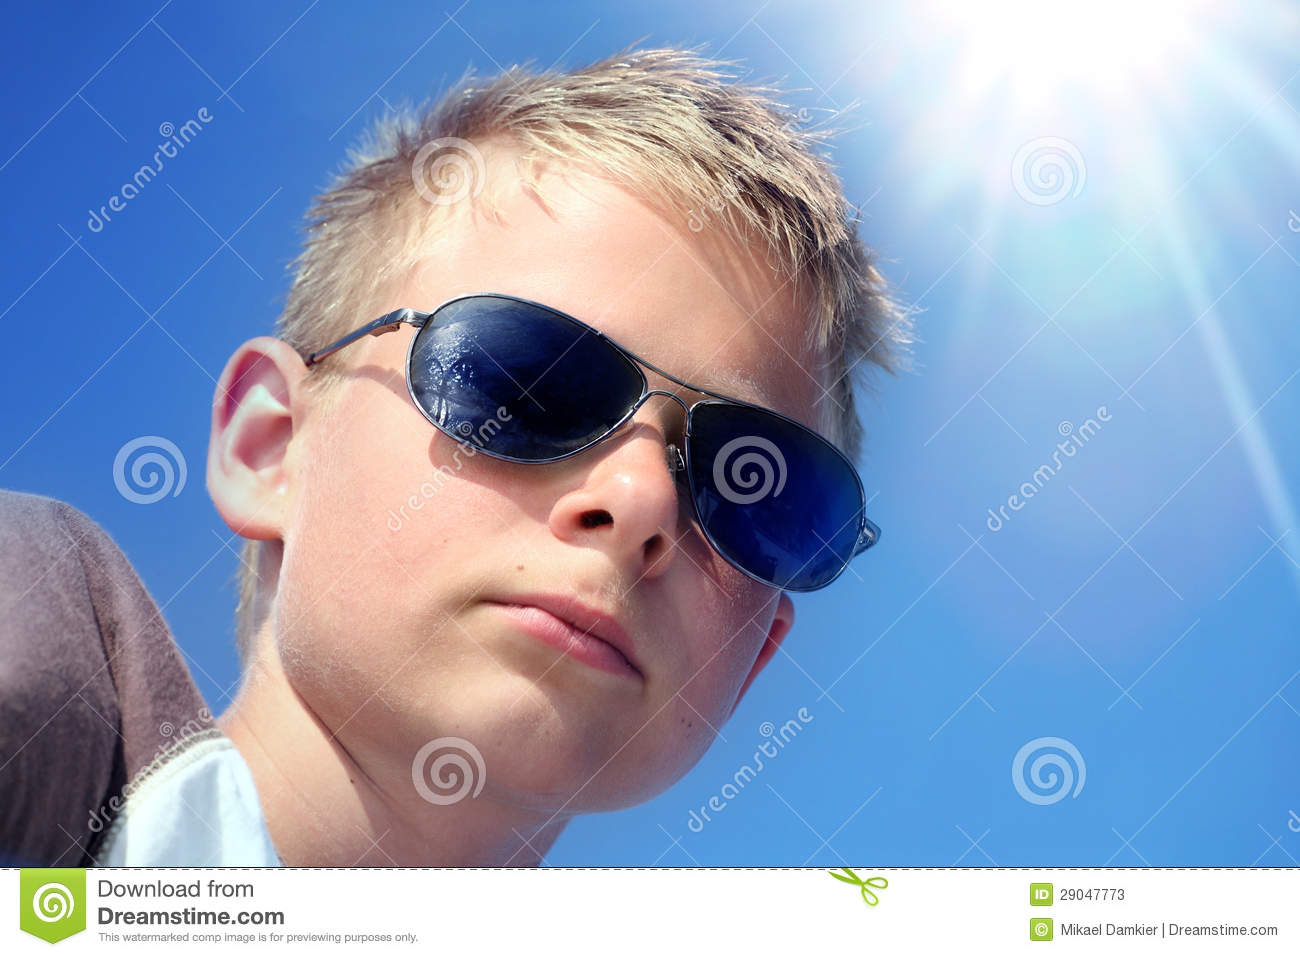 9ced2247670b Kid in sunglasses stock image. Image of lifestyle, people - 29047773